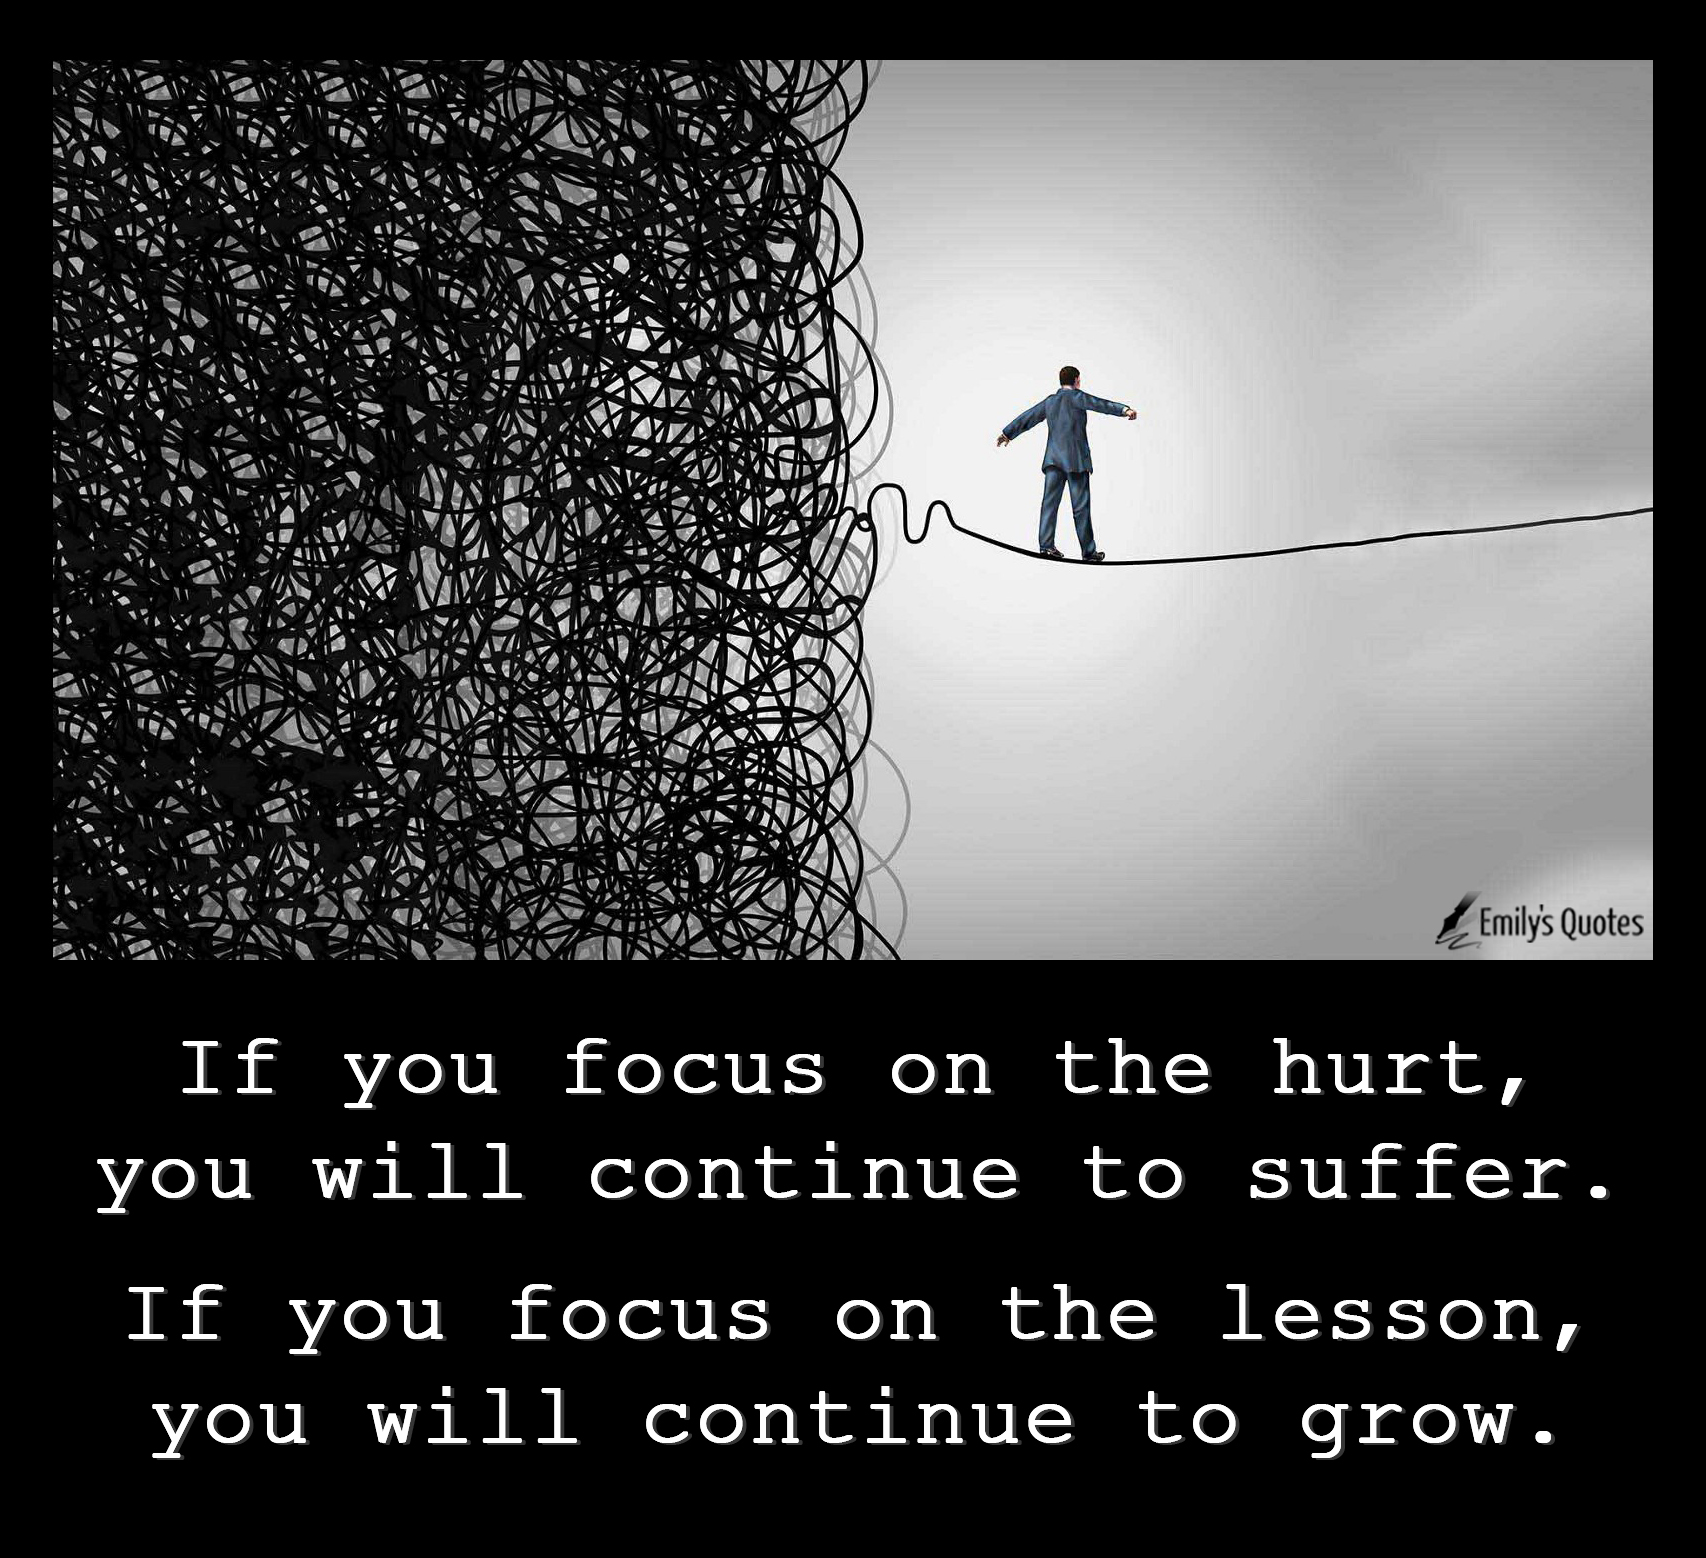 If you focus on the hurt, you will continue to suffer ...